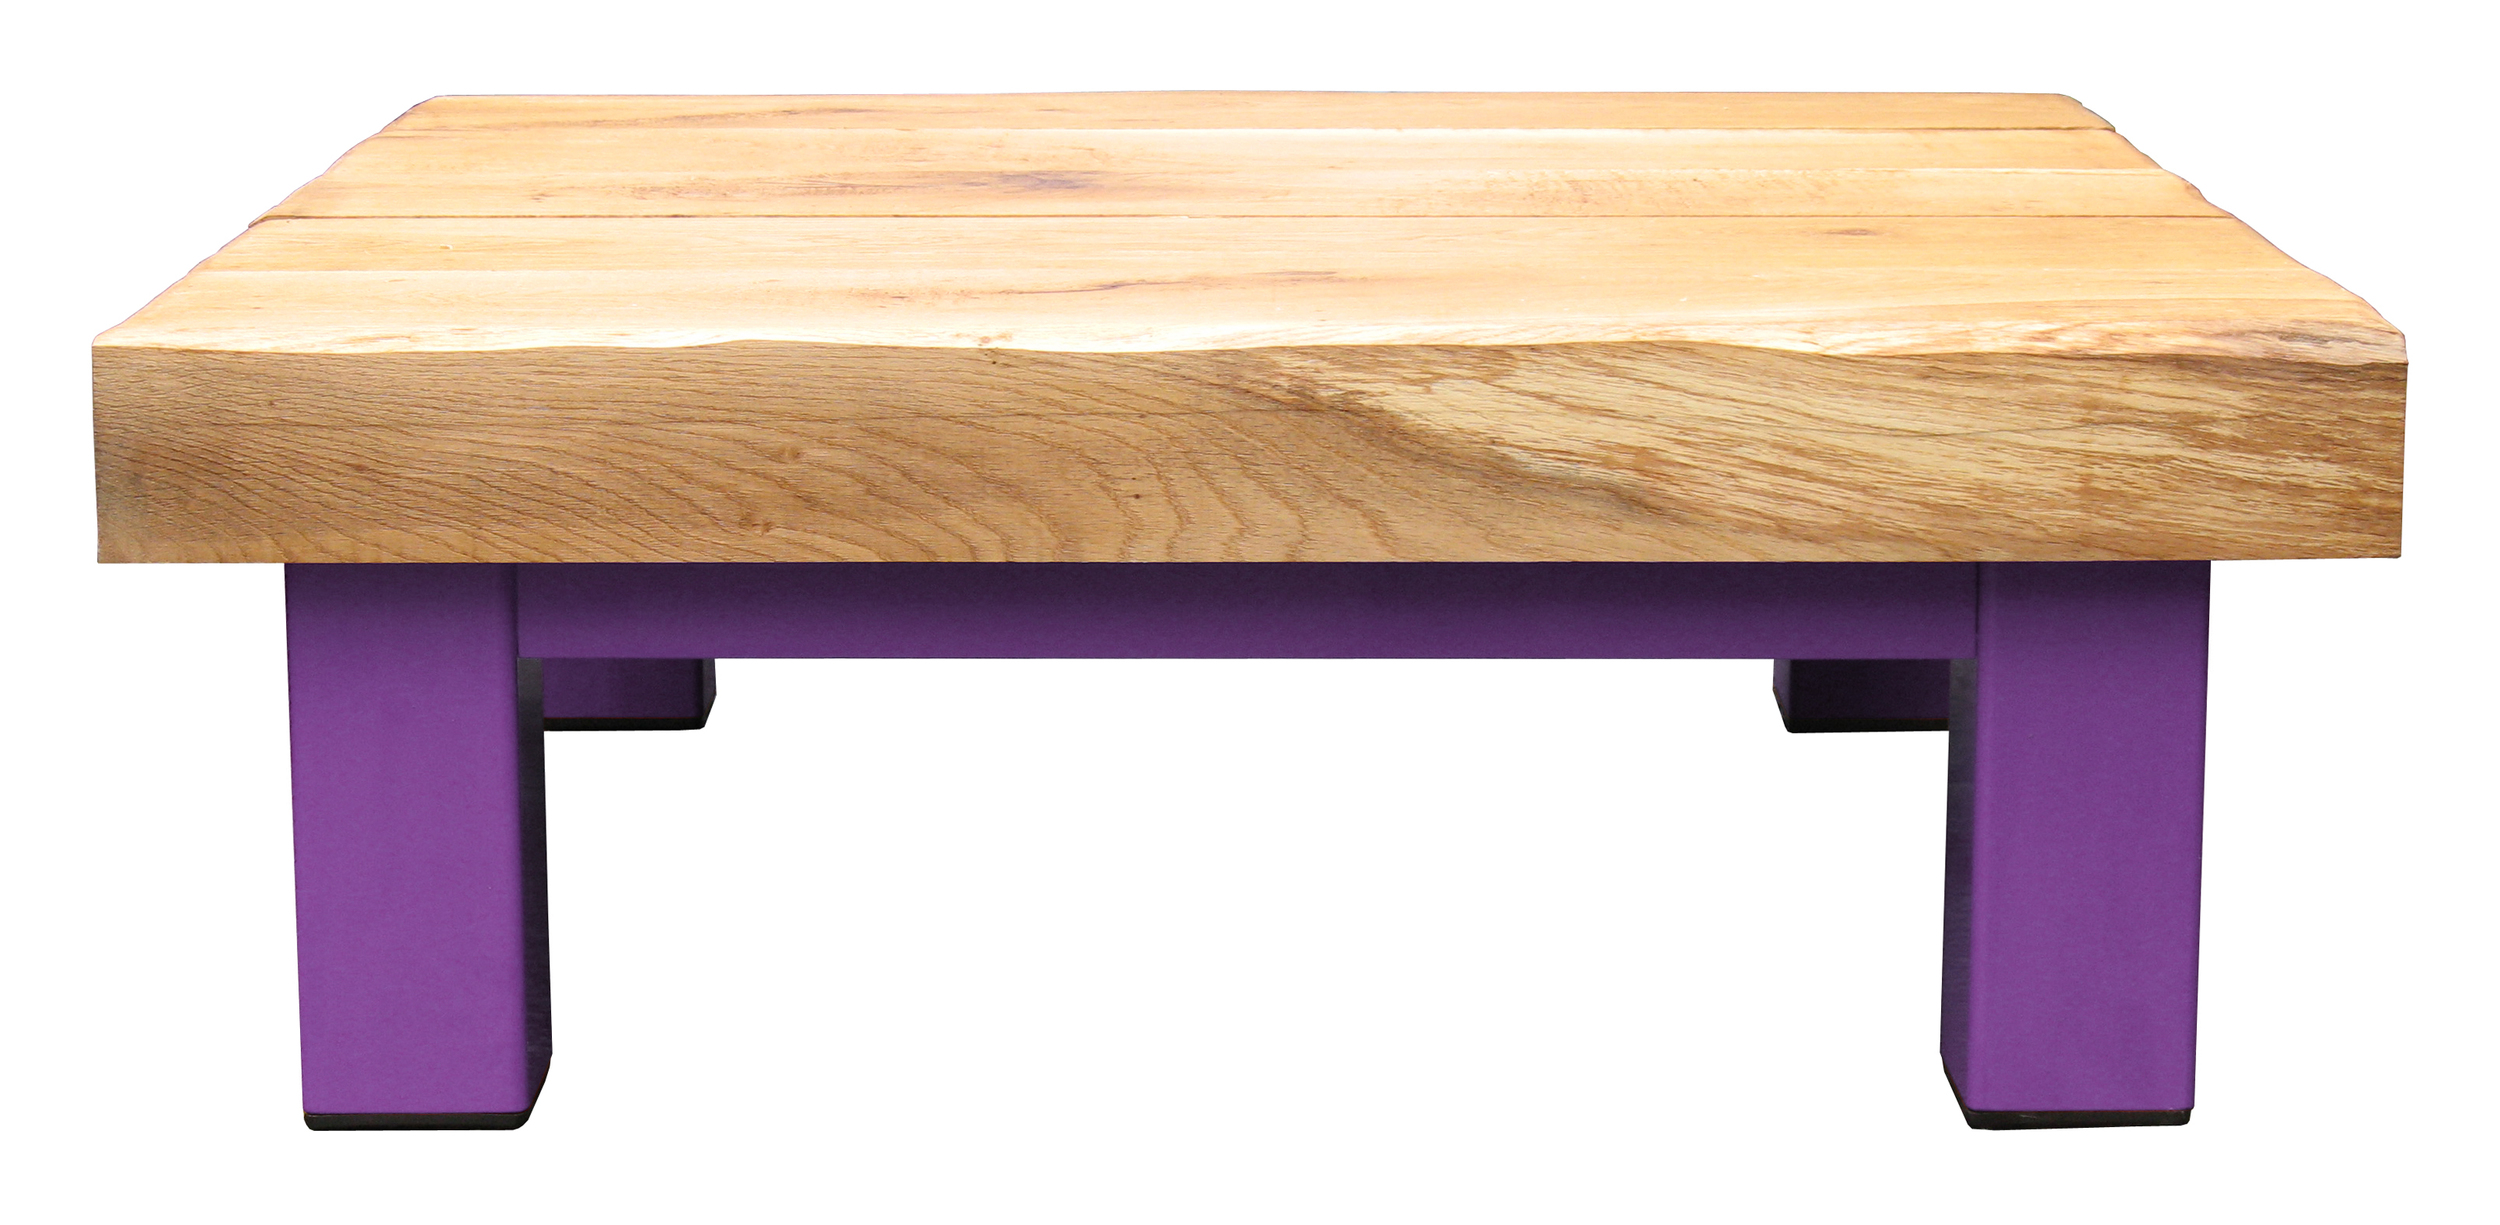 Oak & Iron Furniture Large Coffee Table - Purple